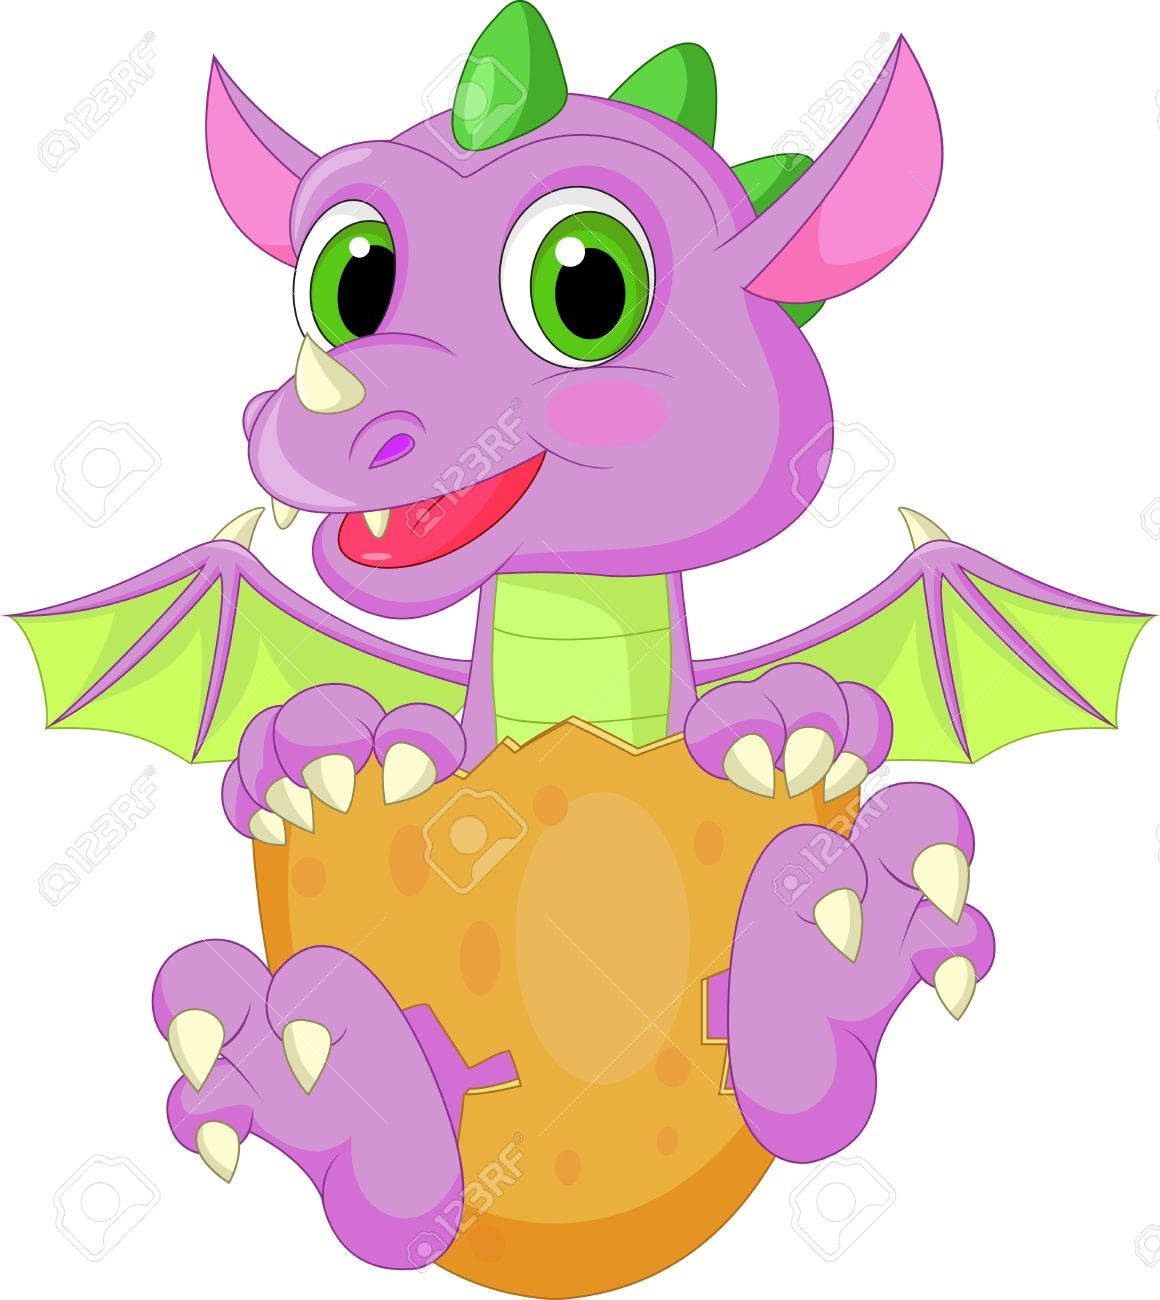 1160x1300 Baby Dinosaur Cartoon Hatching Royalty Free Cliparts, Vectors,